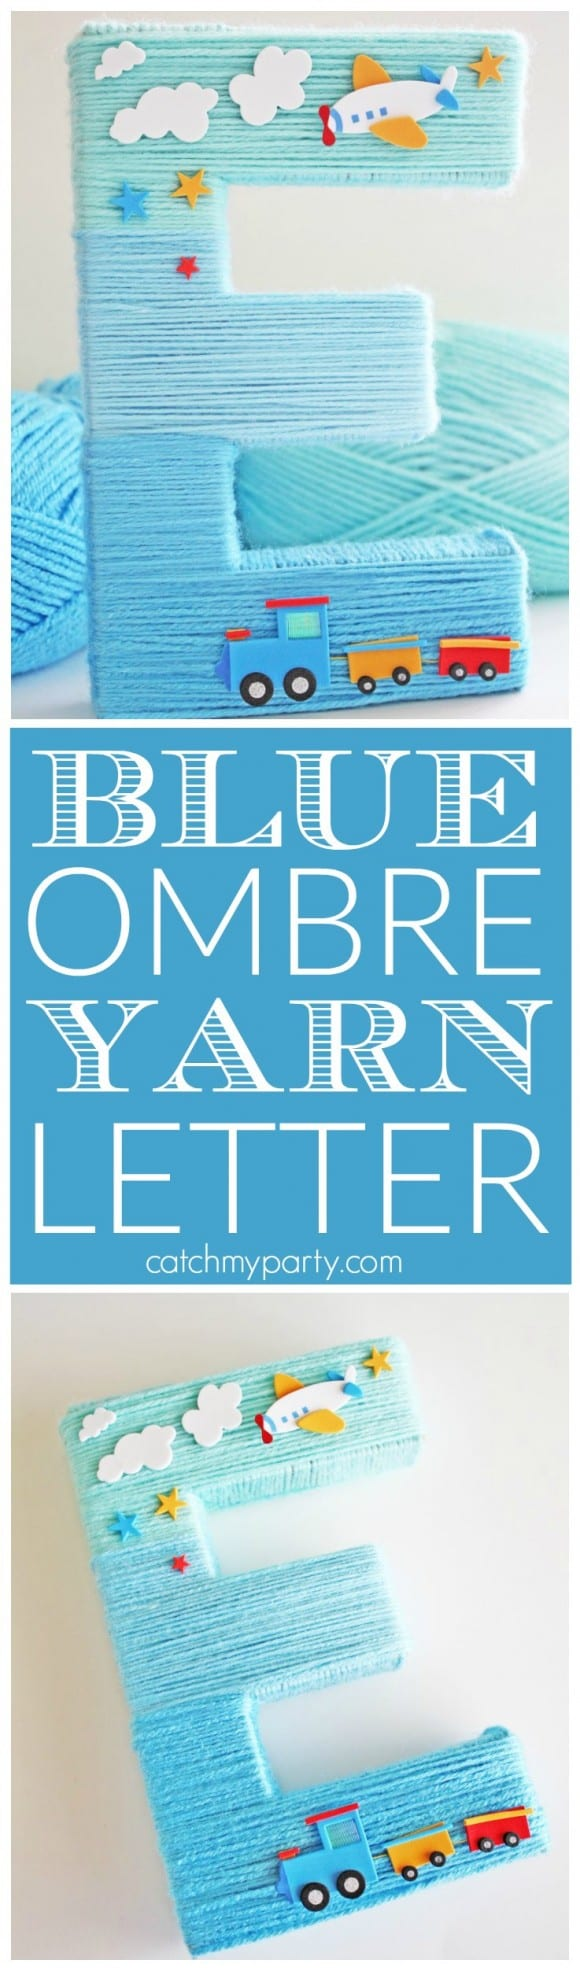 Blue Yarn Wrapped Ombre Monogram Letter | CatchMyParty.com